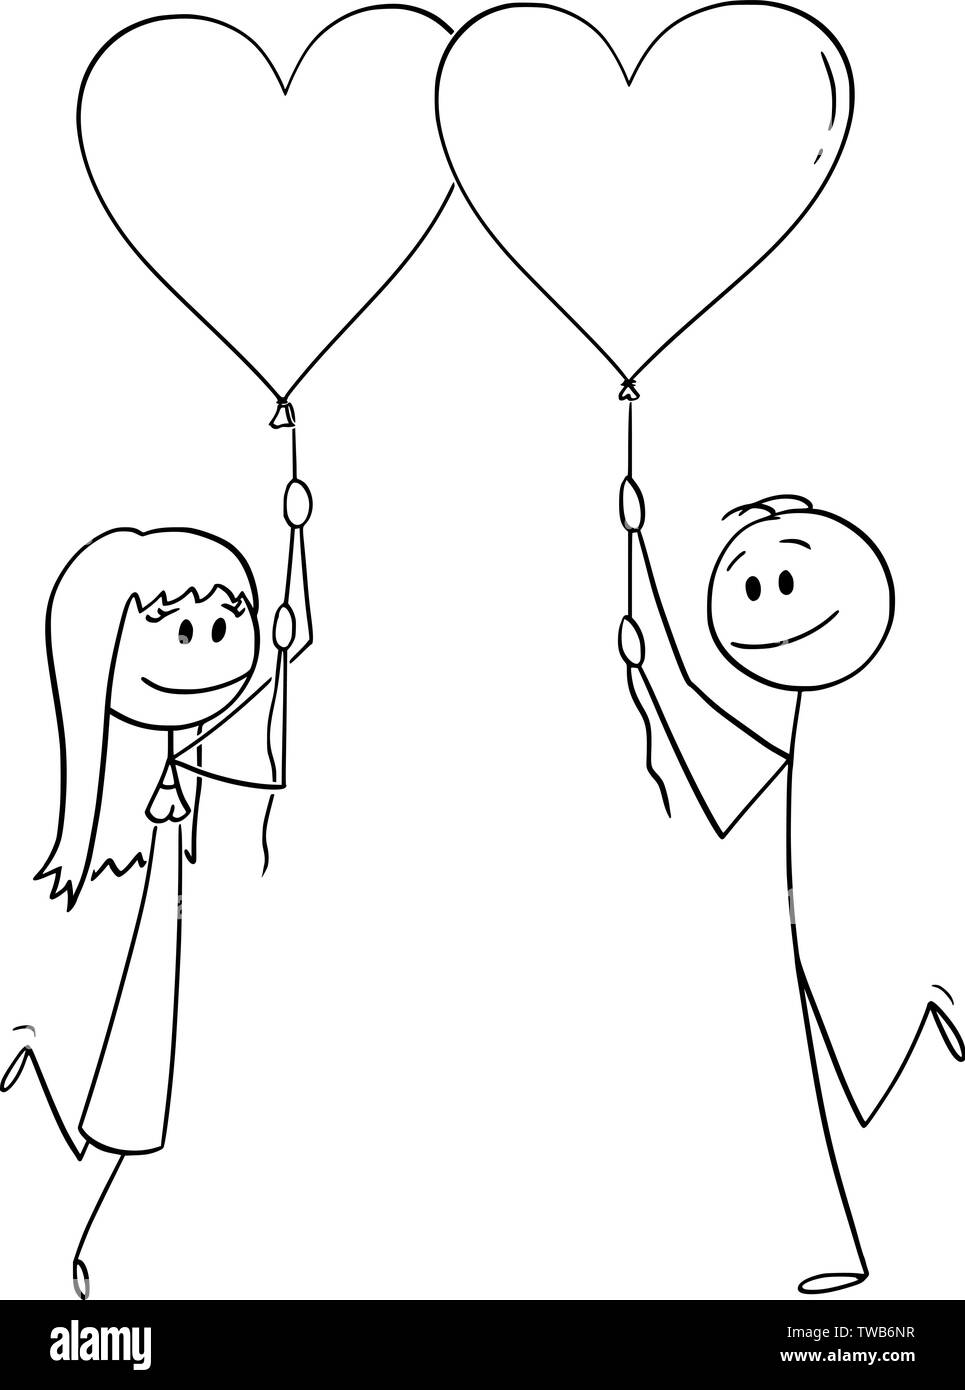 Vector cartoon stick figure drawing conceptual illustration of heterosexual couple of man and woman on date holding heart shaped balloons and smiling. - Stock Image